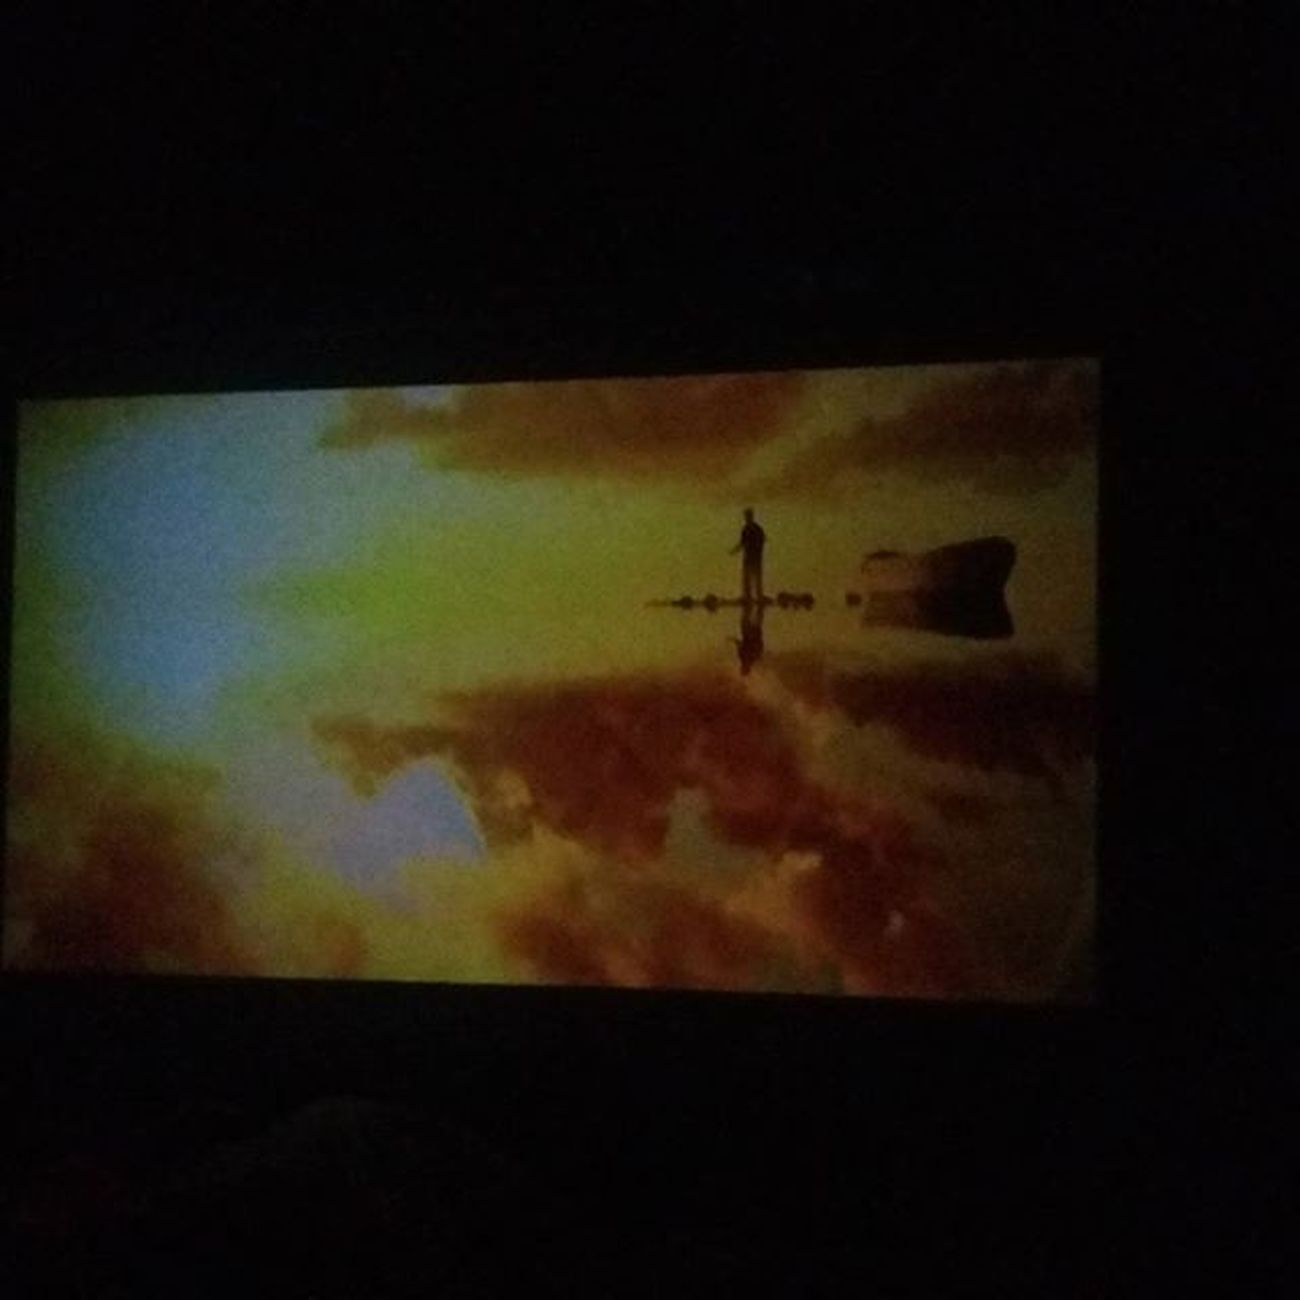 "My new 2K xinda projector Muma 'sgift Blackfriday Homecinema Xinda 70 ""screen"